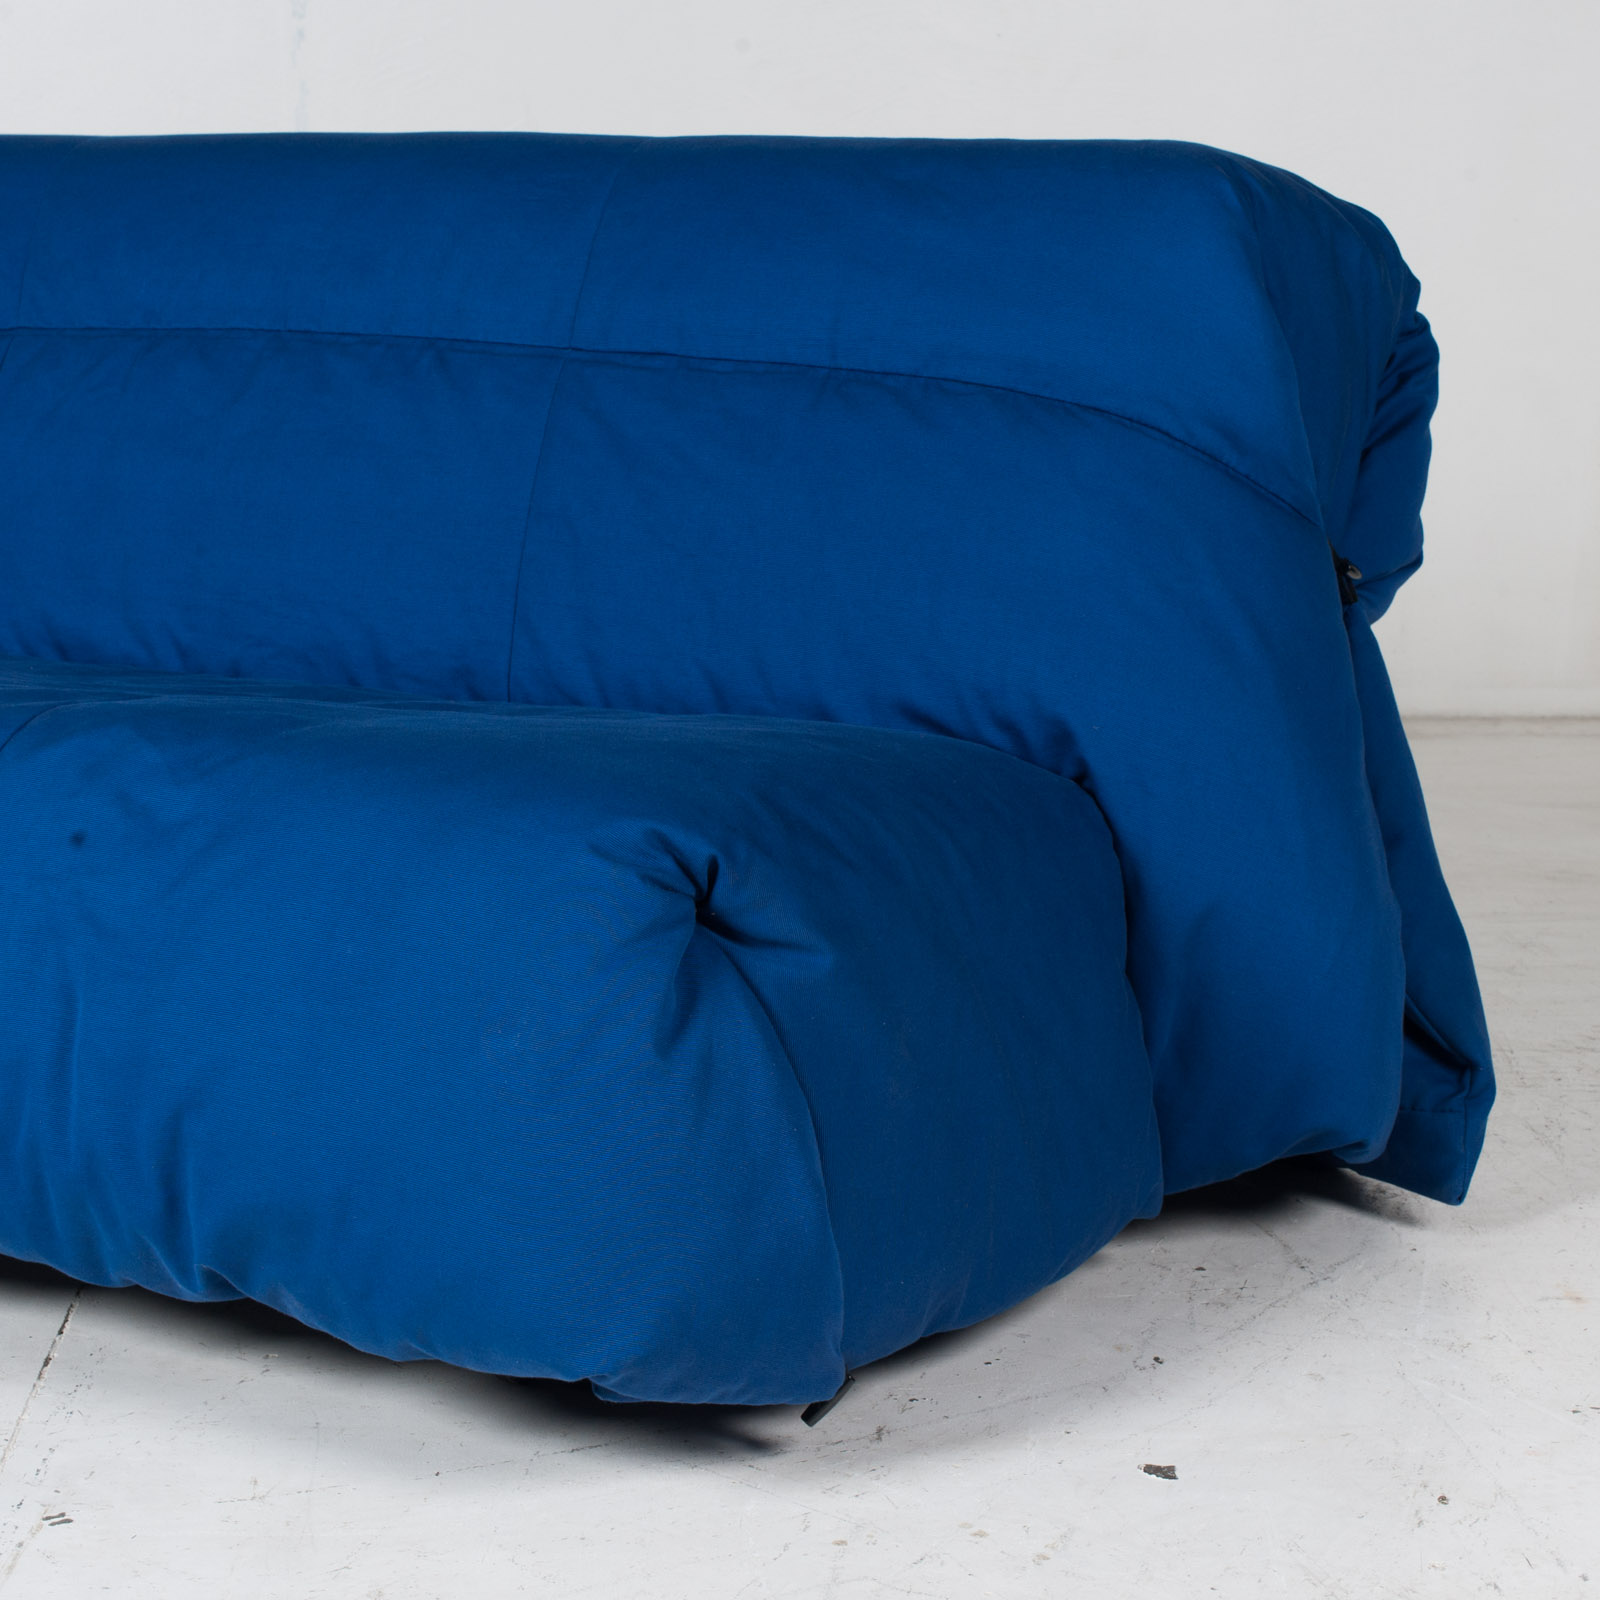 Sofa Bed By Ligne Roset In Blue Upholstery, 1960s, France6